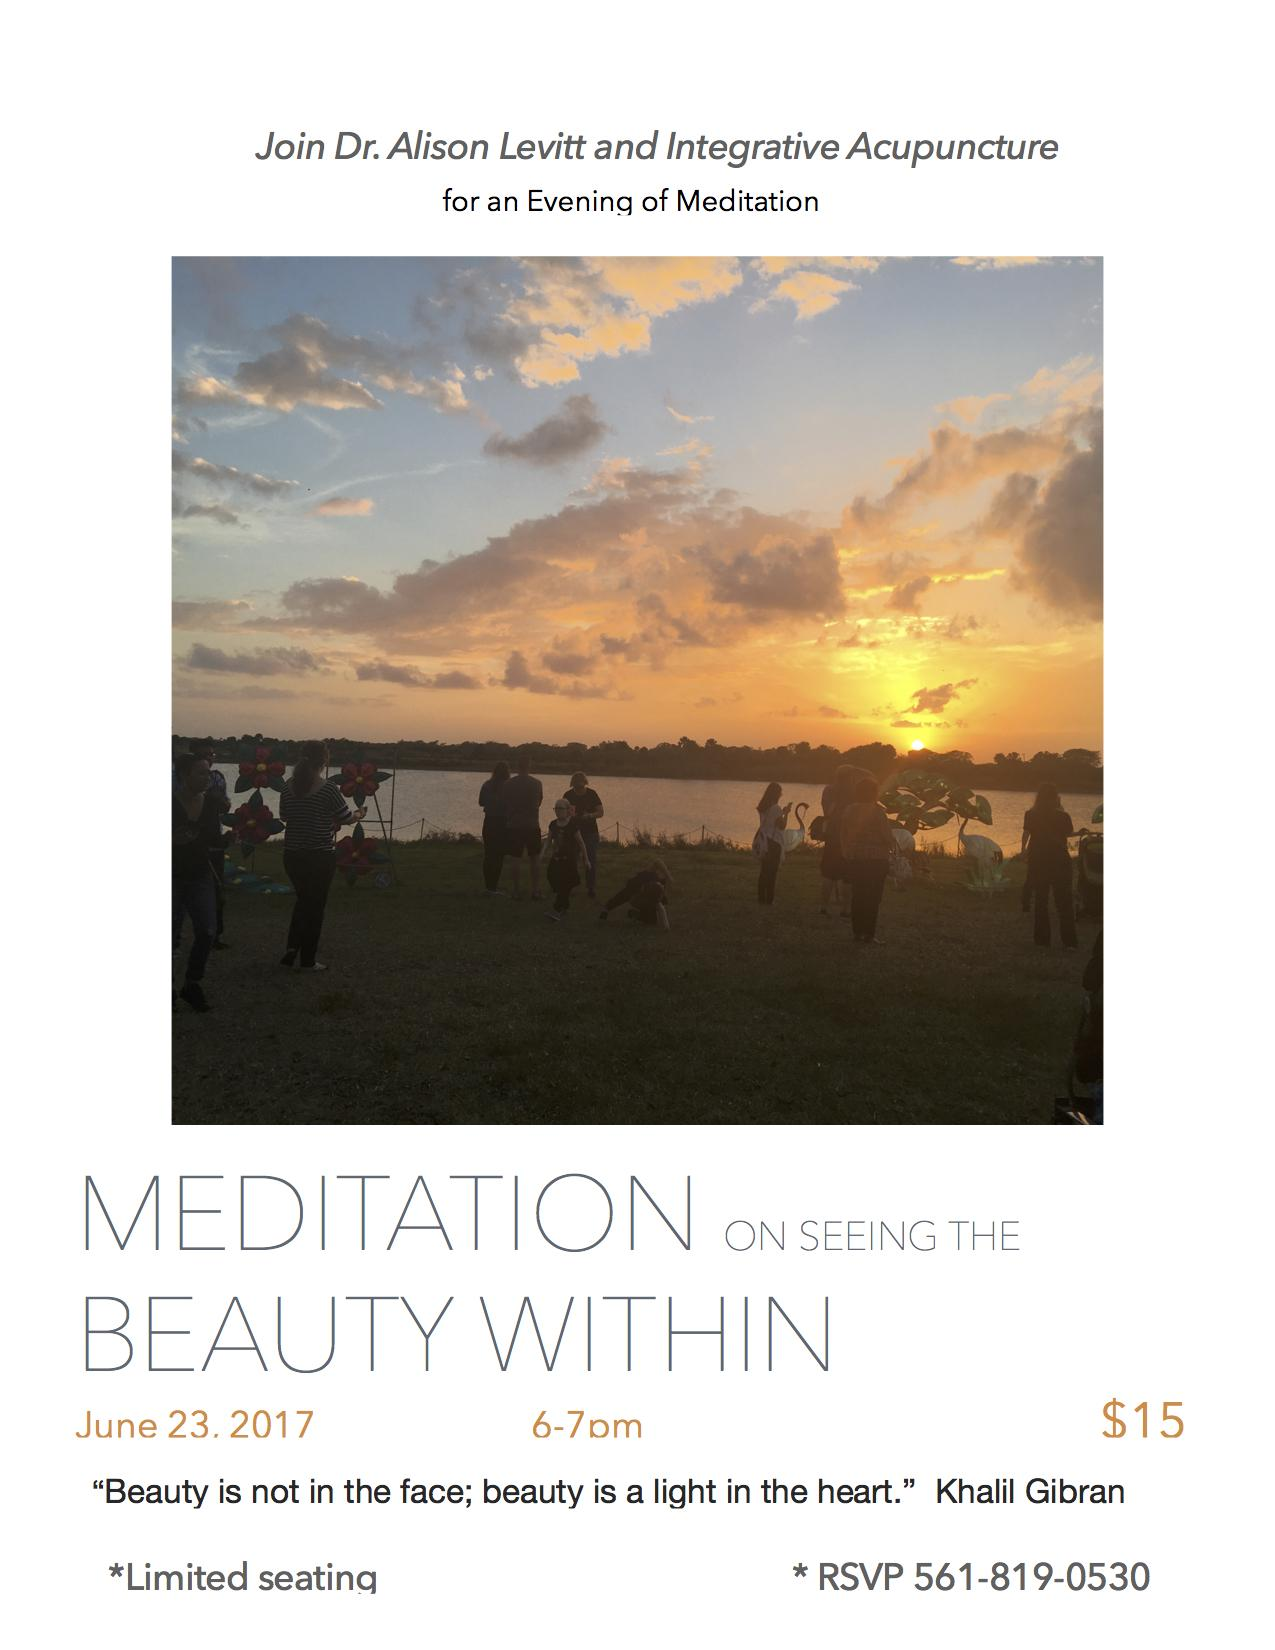 Meditation to Find Beauty Within